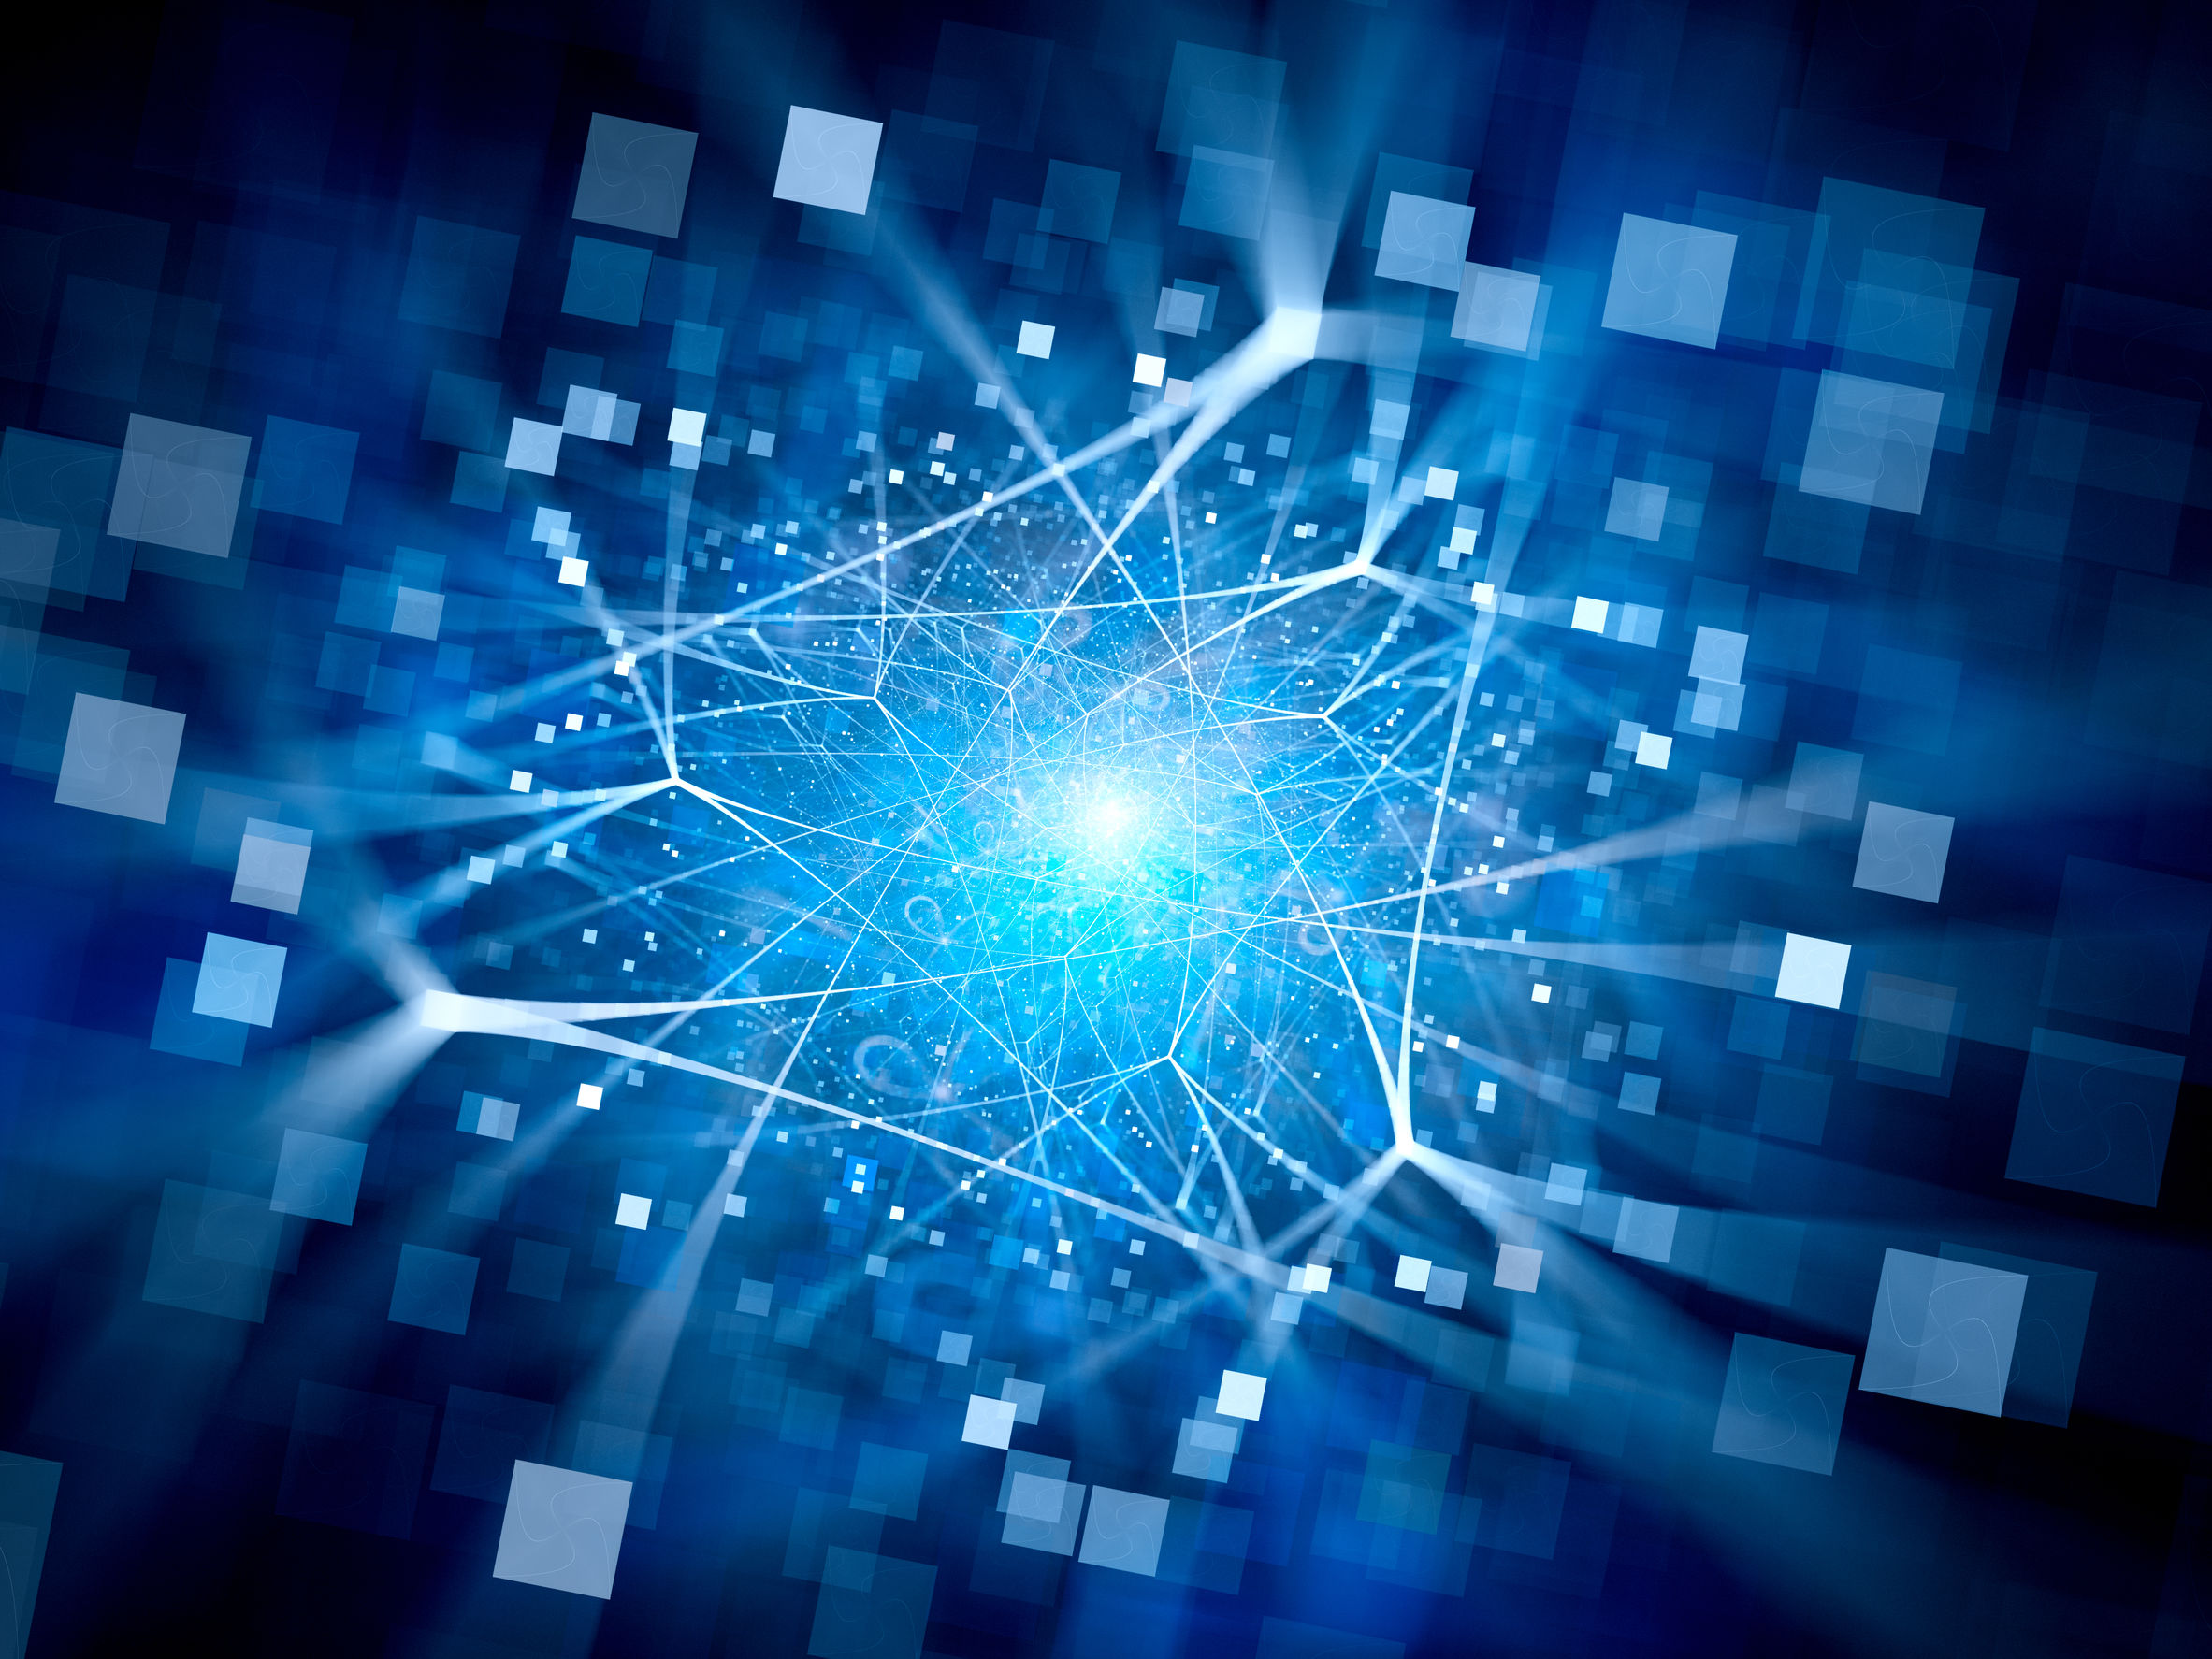 Blue Glowing Network Connections With Square Particles